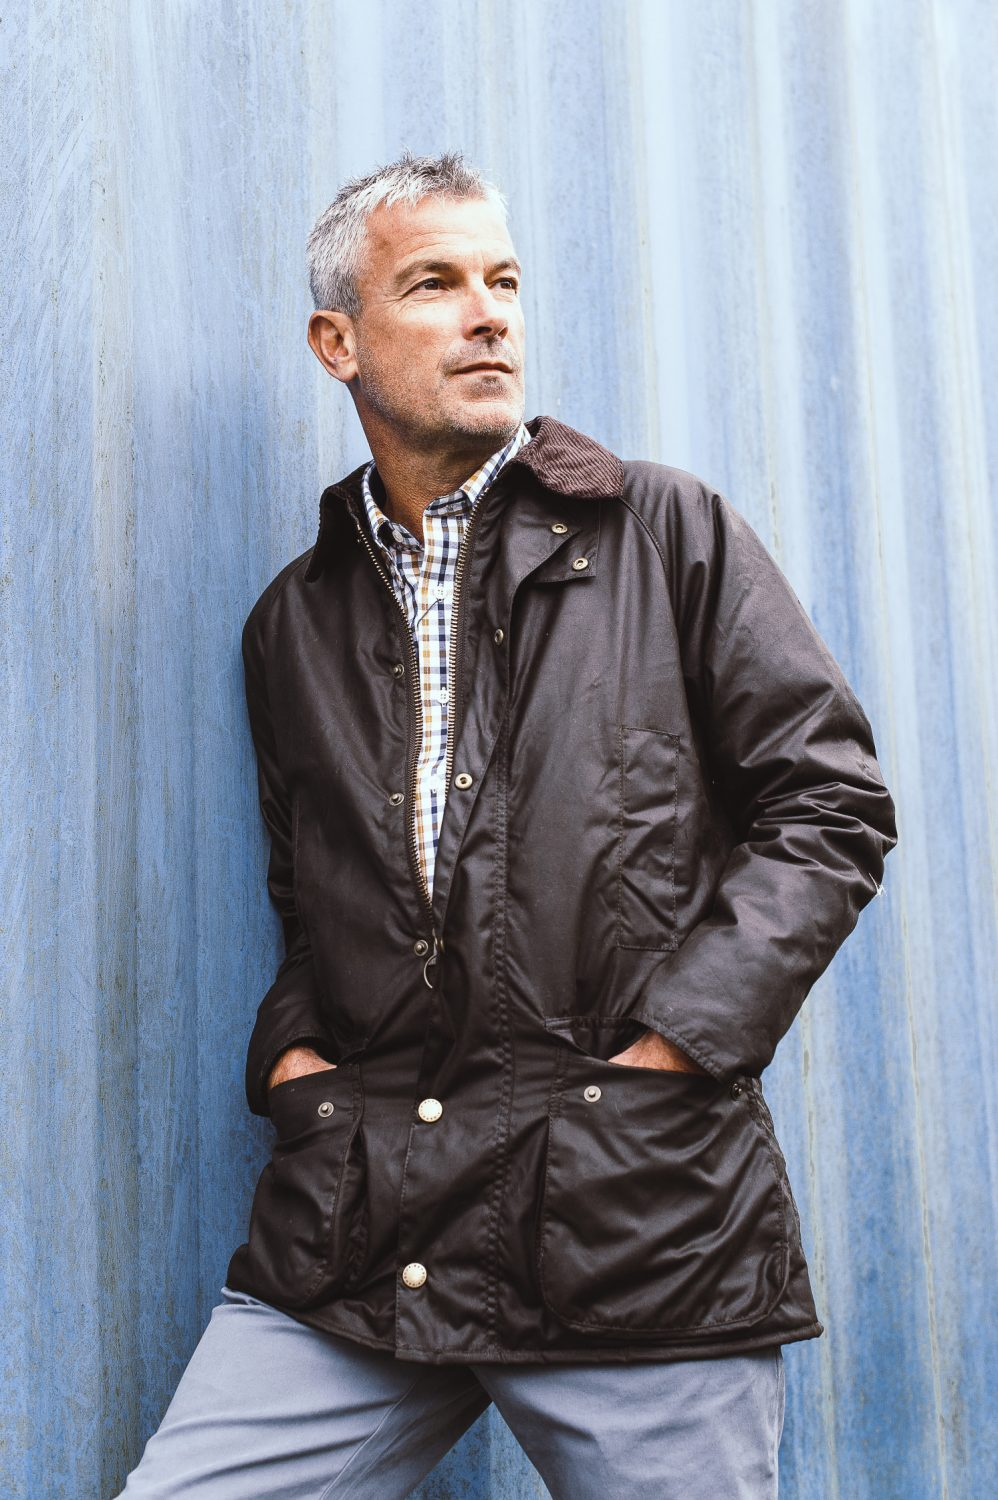 Barbour waxed jacket, £199, Schoffel Brancaster shirt, £69.95, The Golden Boot, Maidstone thegoldenboot.co.uk